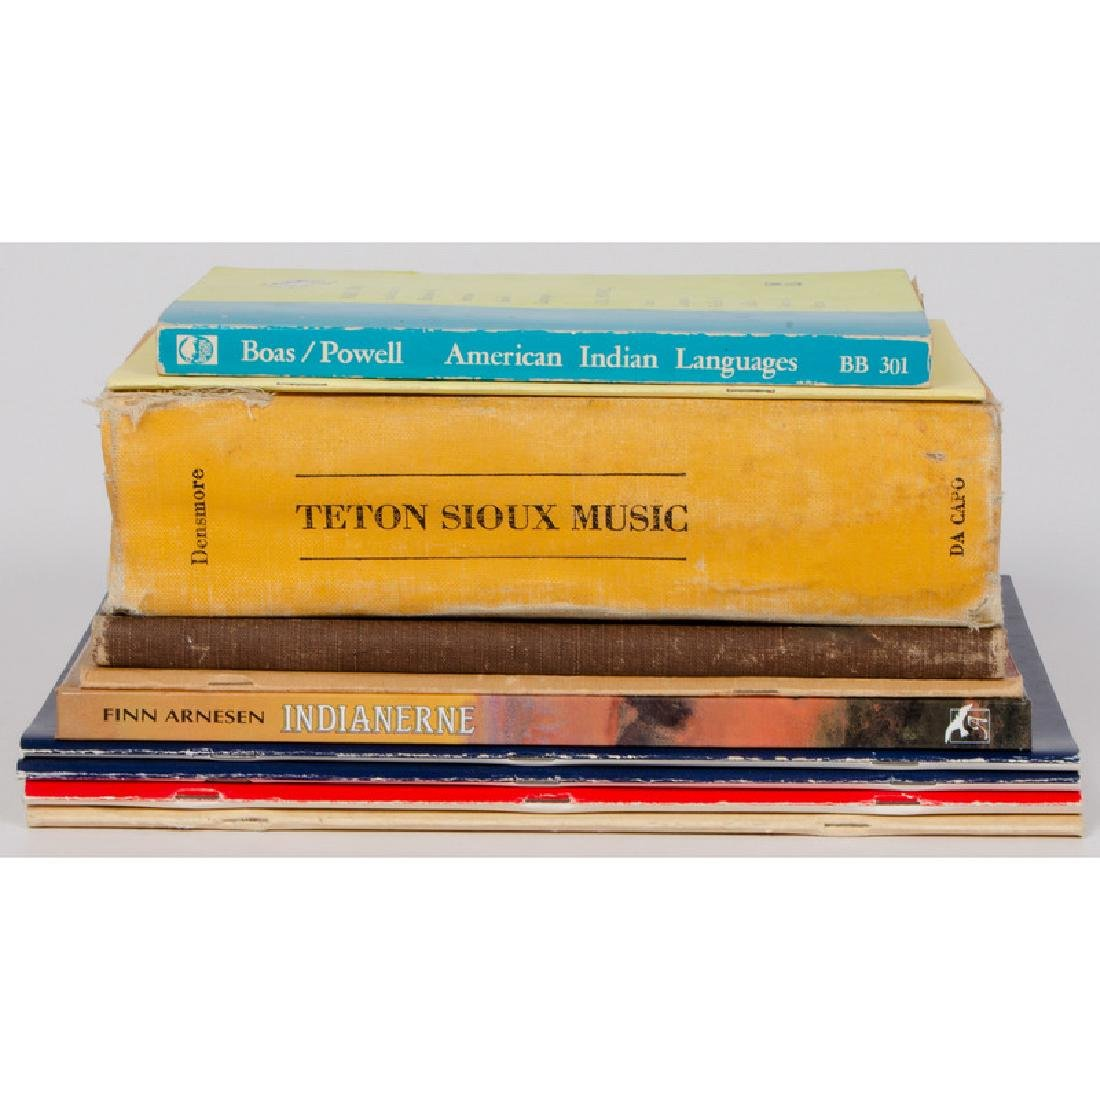 [Education] Books on American Indian Music and Language